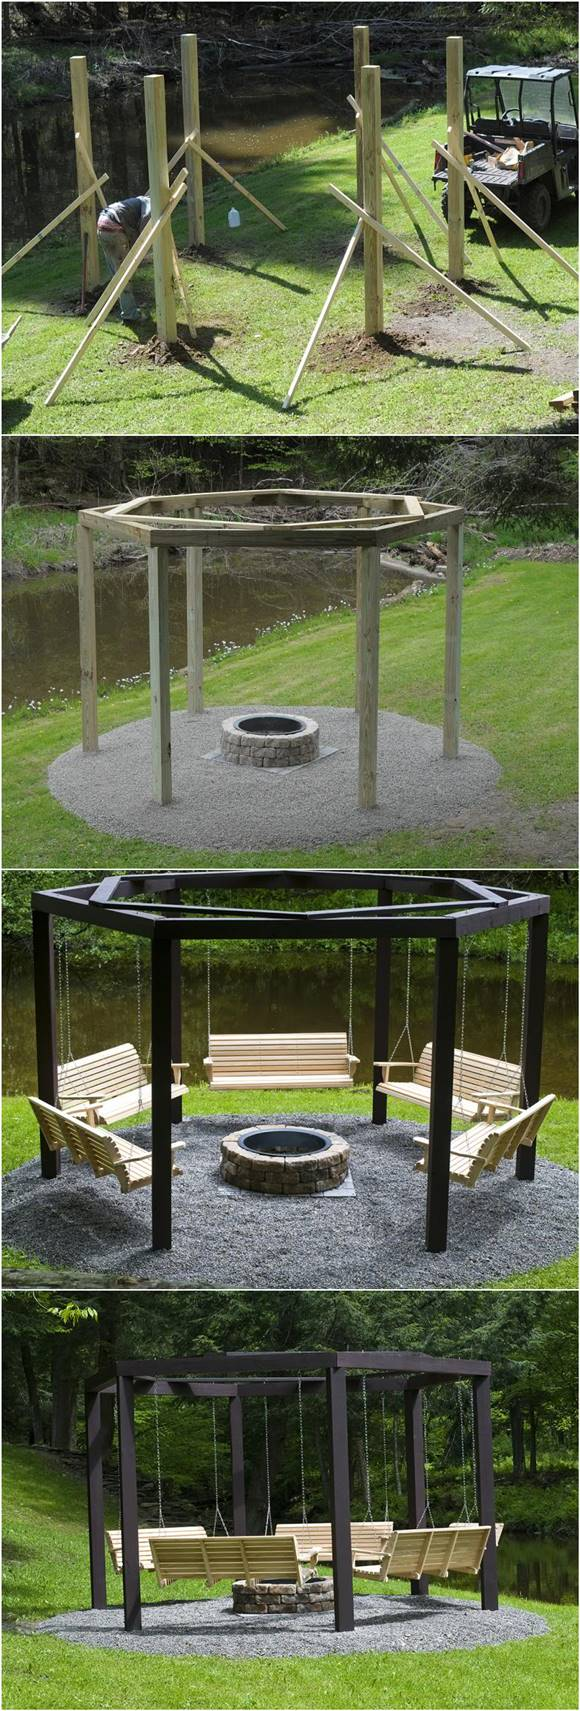 diy backyard fire pit with swing seats. Black Bedroom Furniture Sets. Home Design Ideas